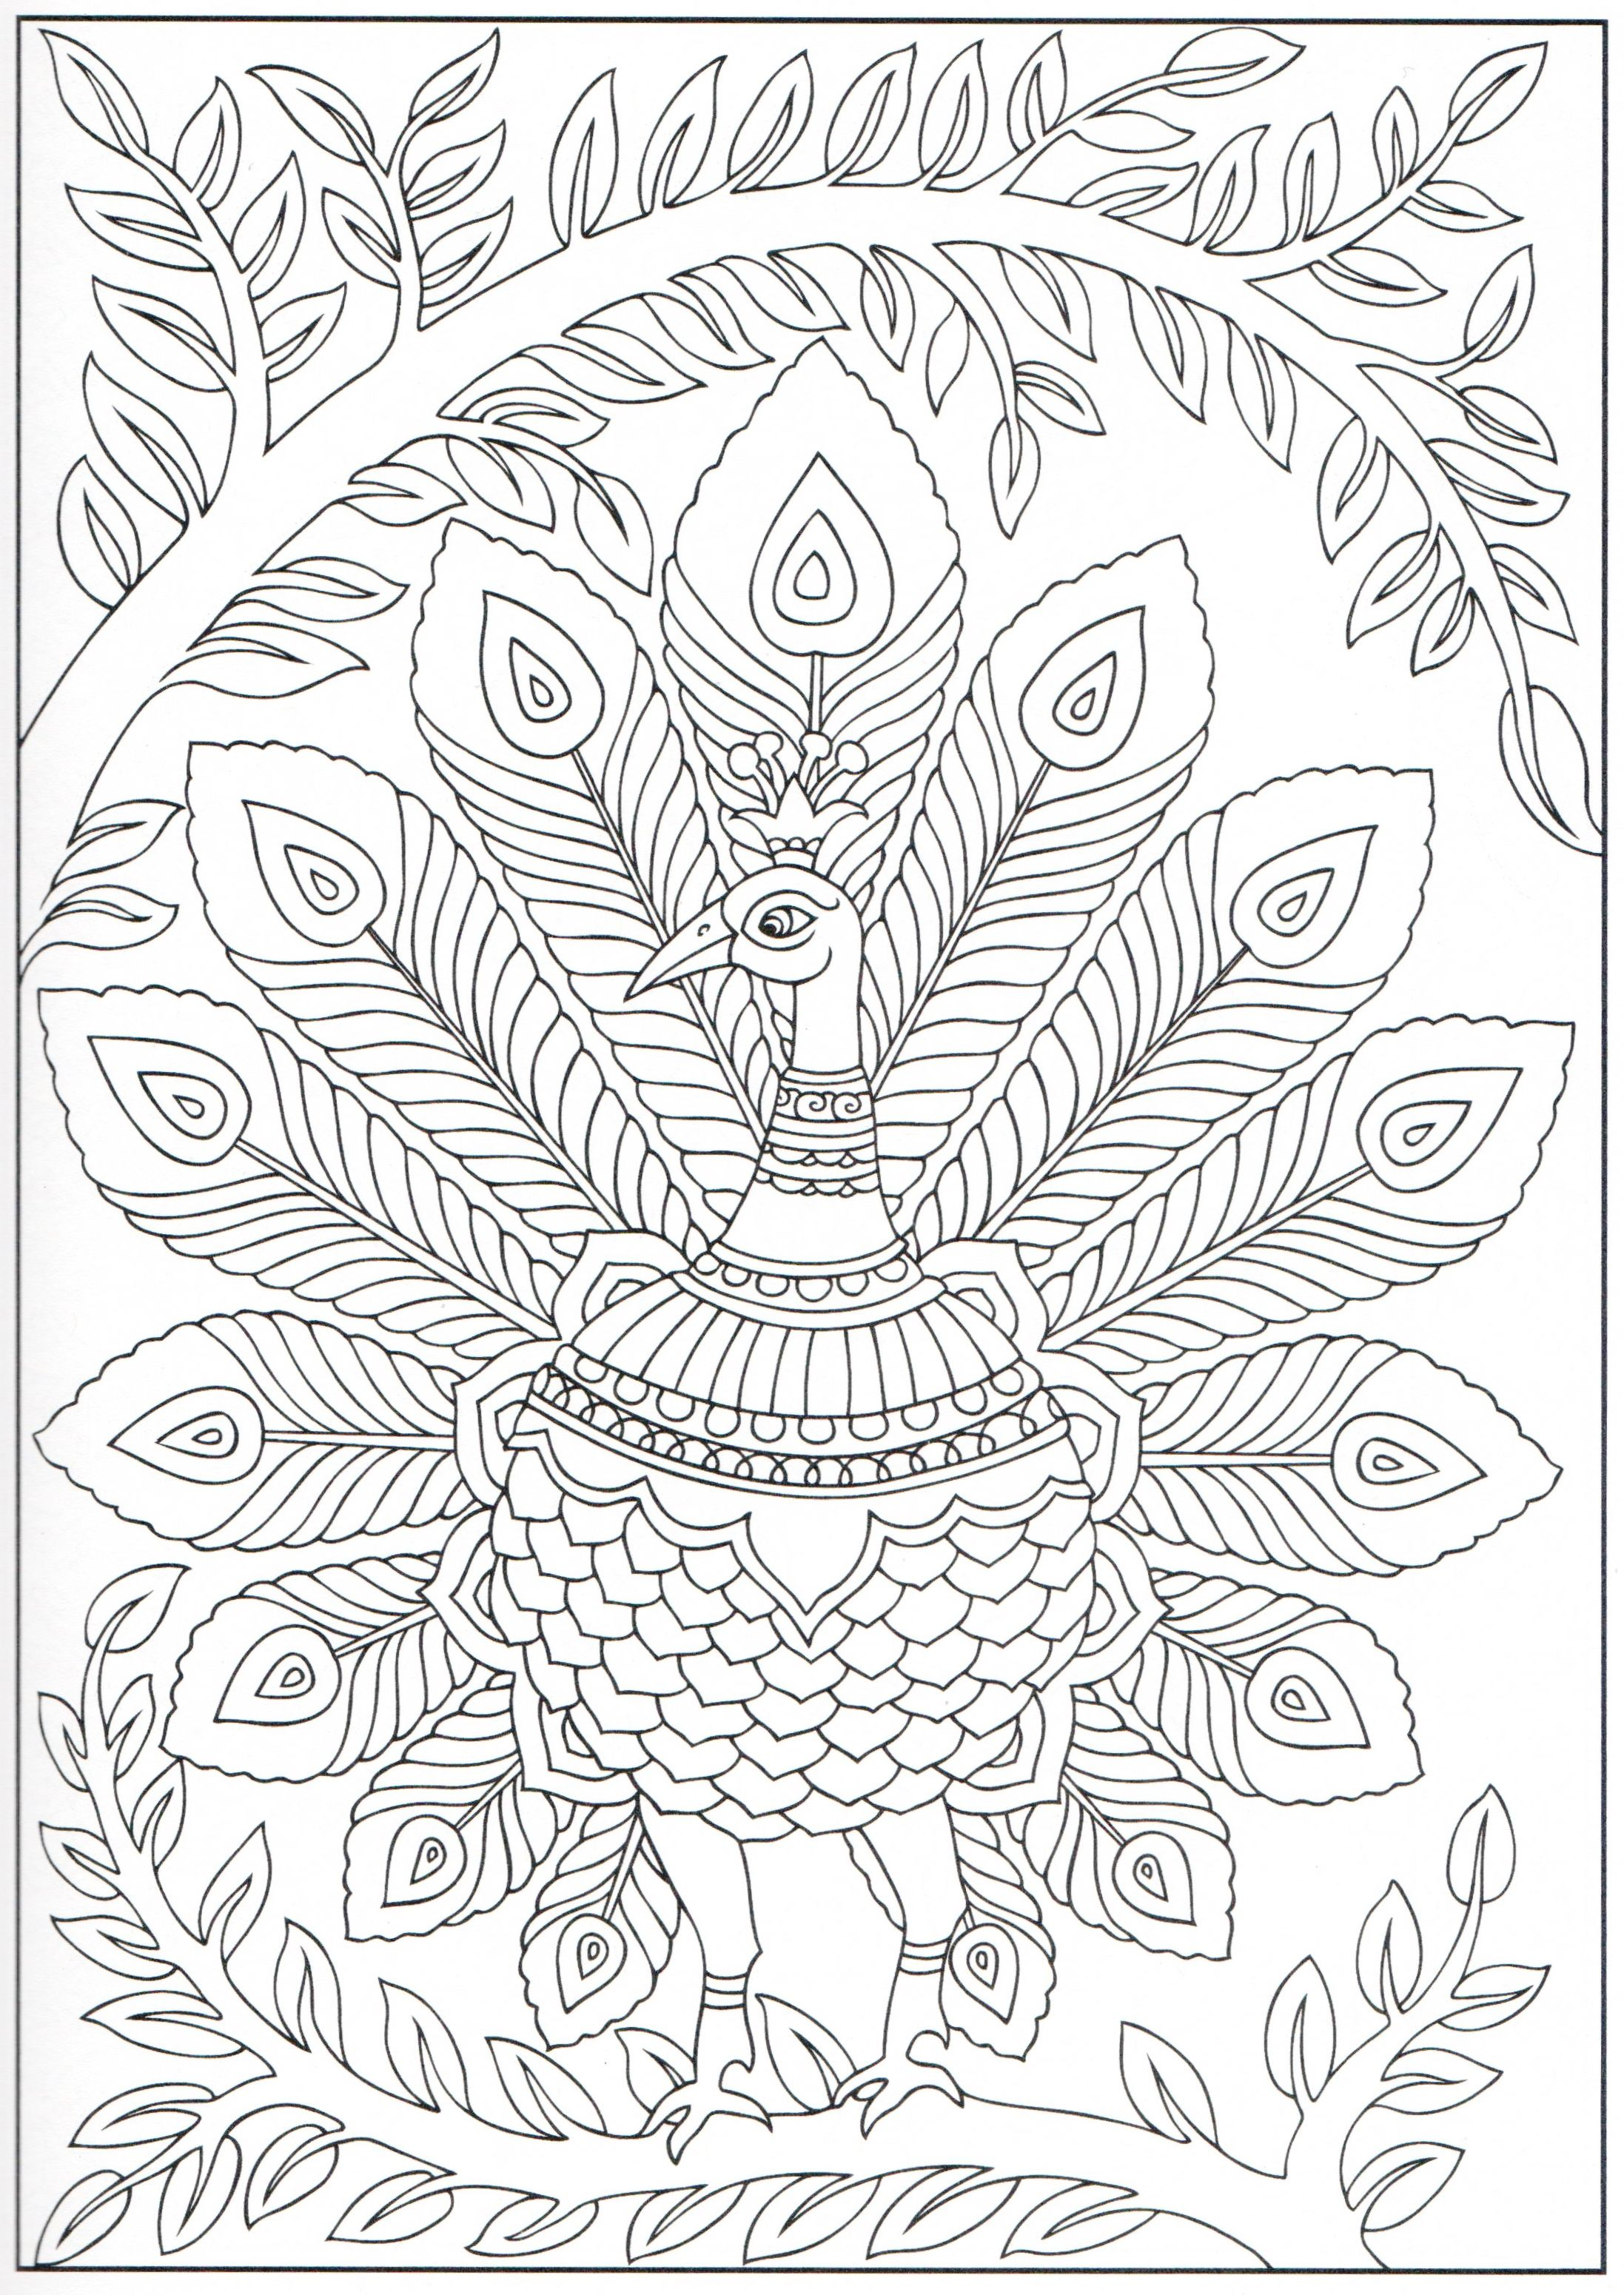 Peacock coloring page 12/31 | Adult Colouring Products | Pinterest ...